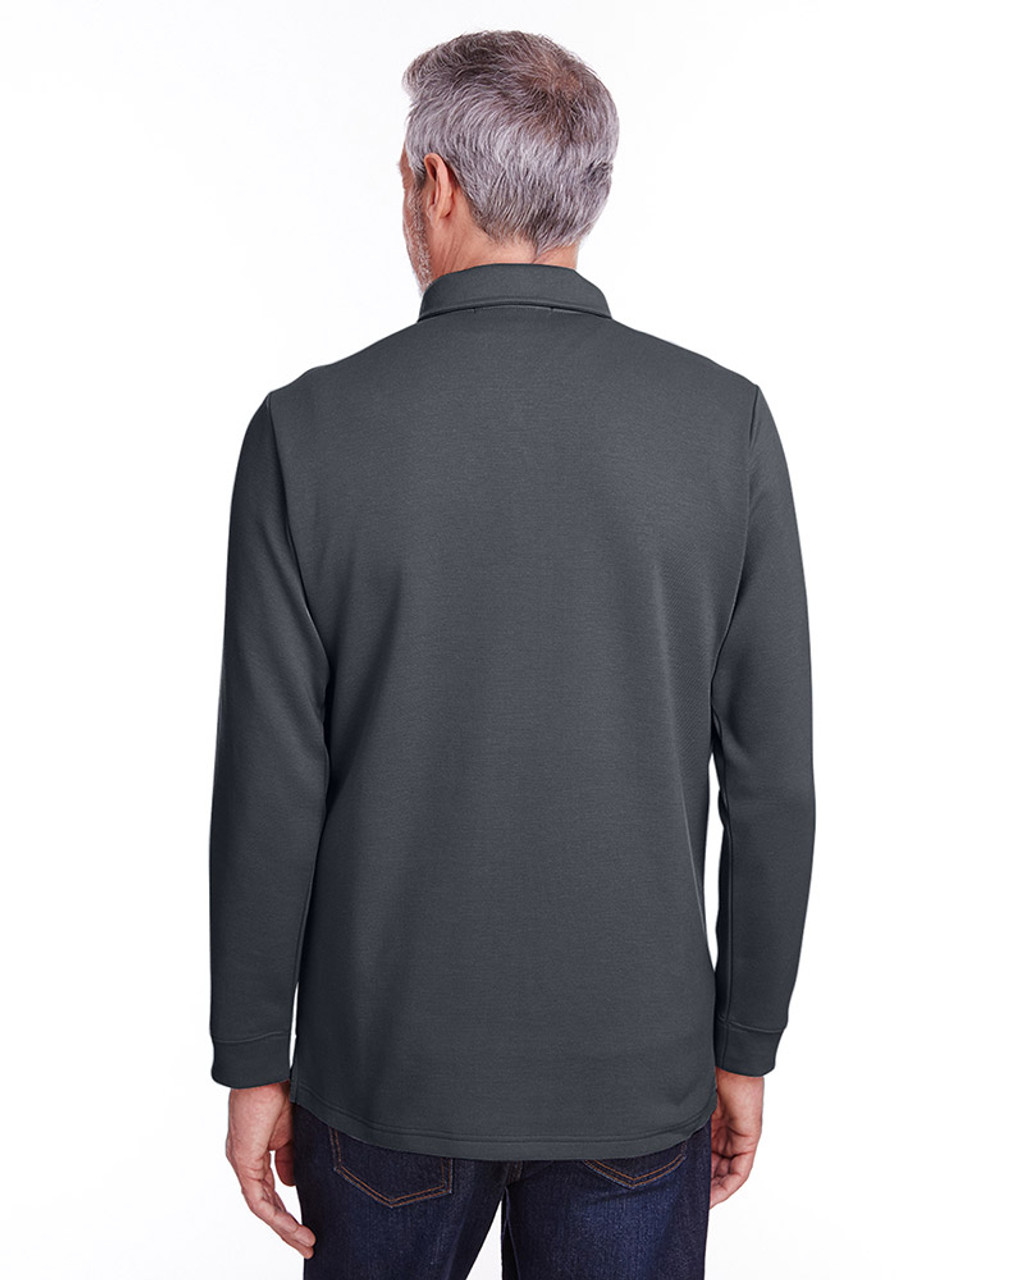 Dark Charcoal - back, M709 Harriton Adult StainBloc™ Pique Fleece Pullover Jacket | Blankclothing.ca